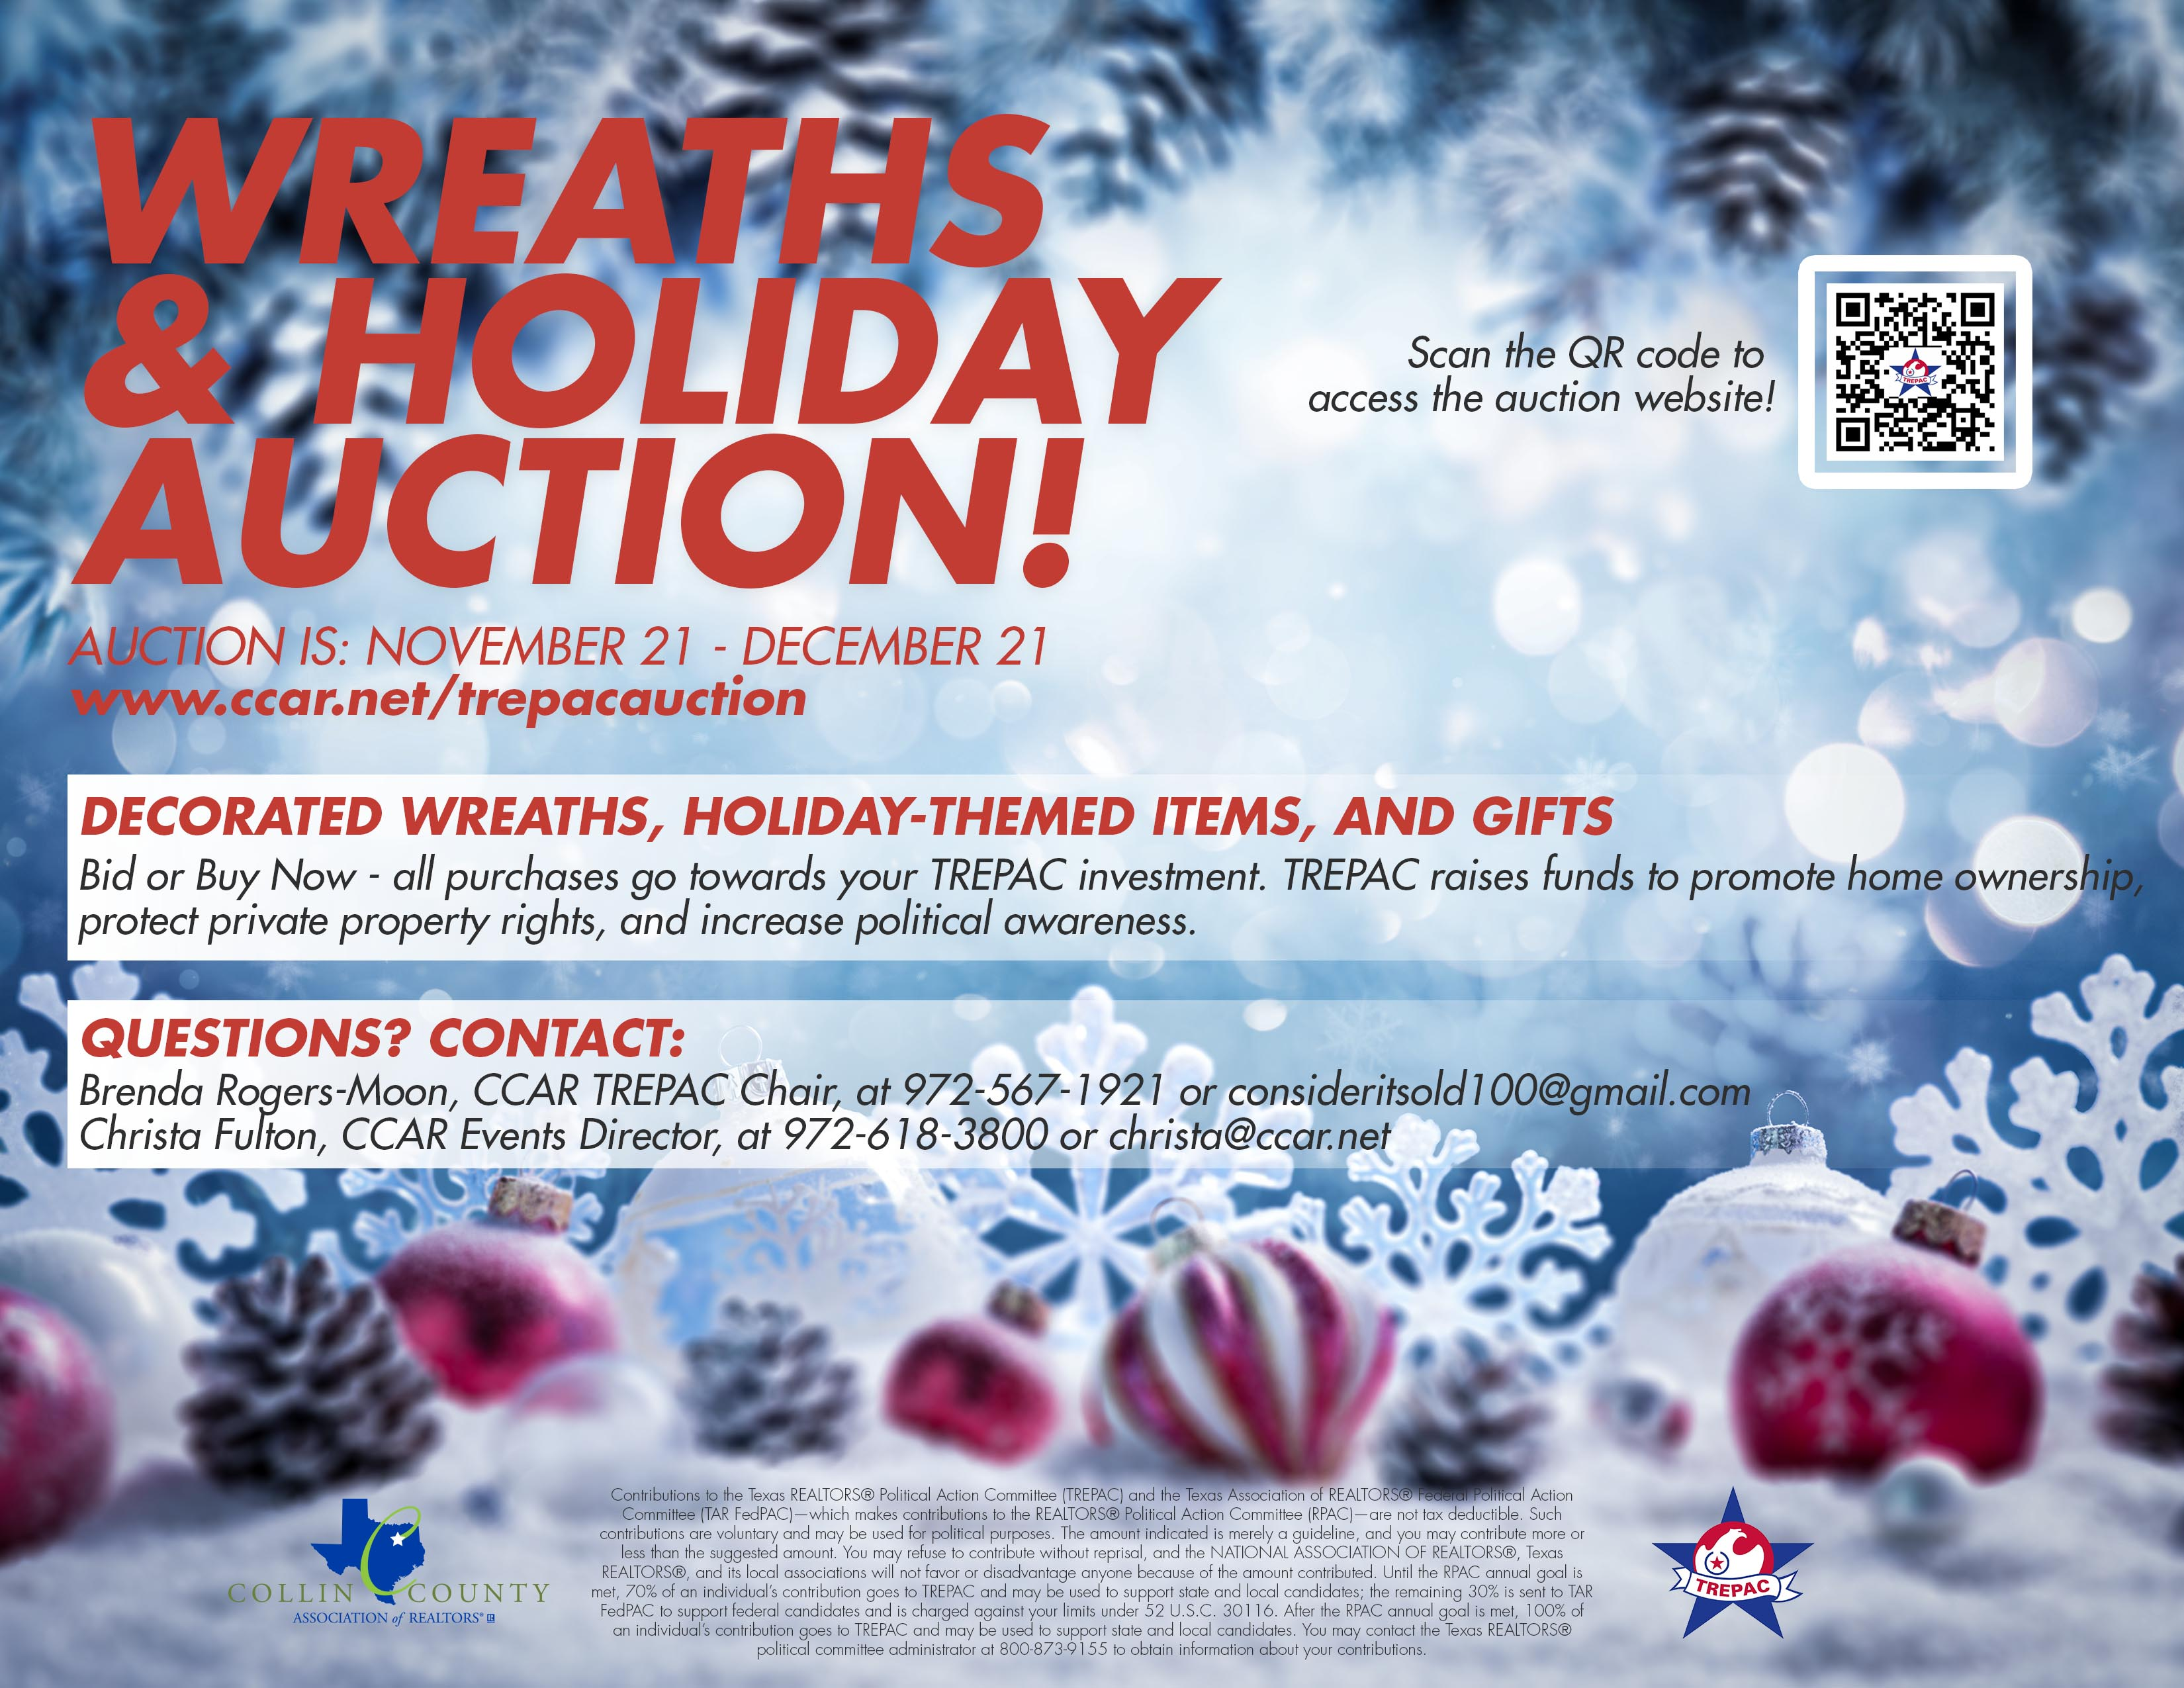 Wreaths & Holiday Auction Event Flyer